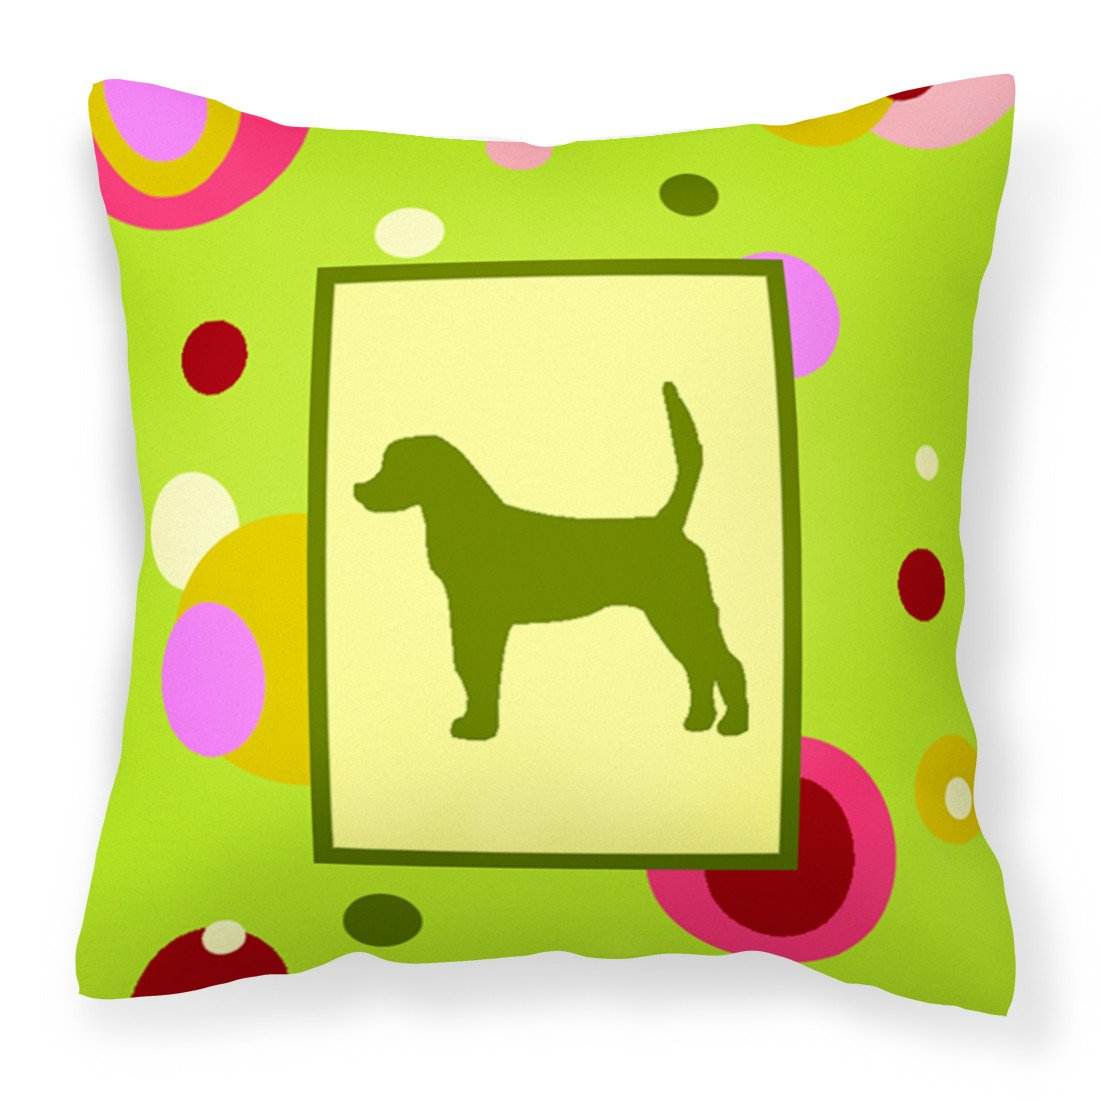 Lime Green Dots English Foxhound Fabric Decorative Pillow CK1027PW1414 by Caroline's Treasures